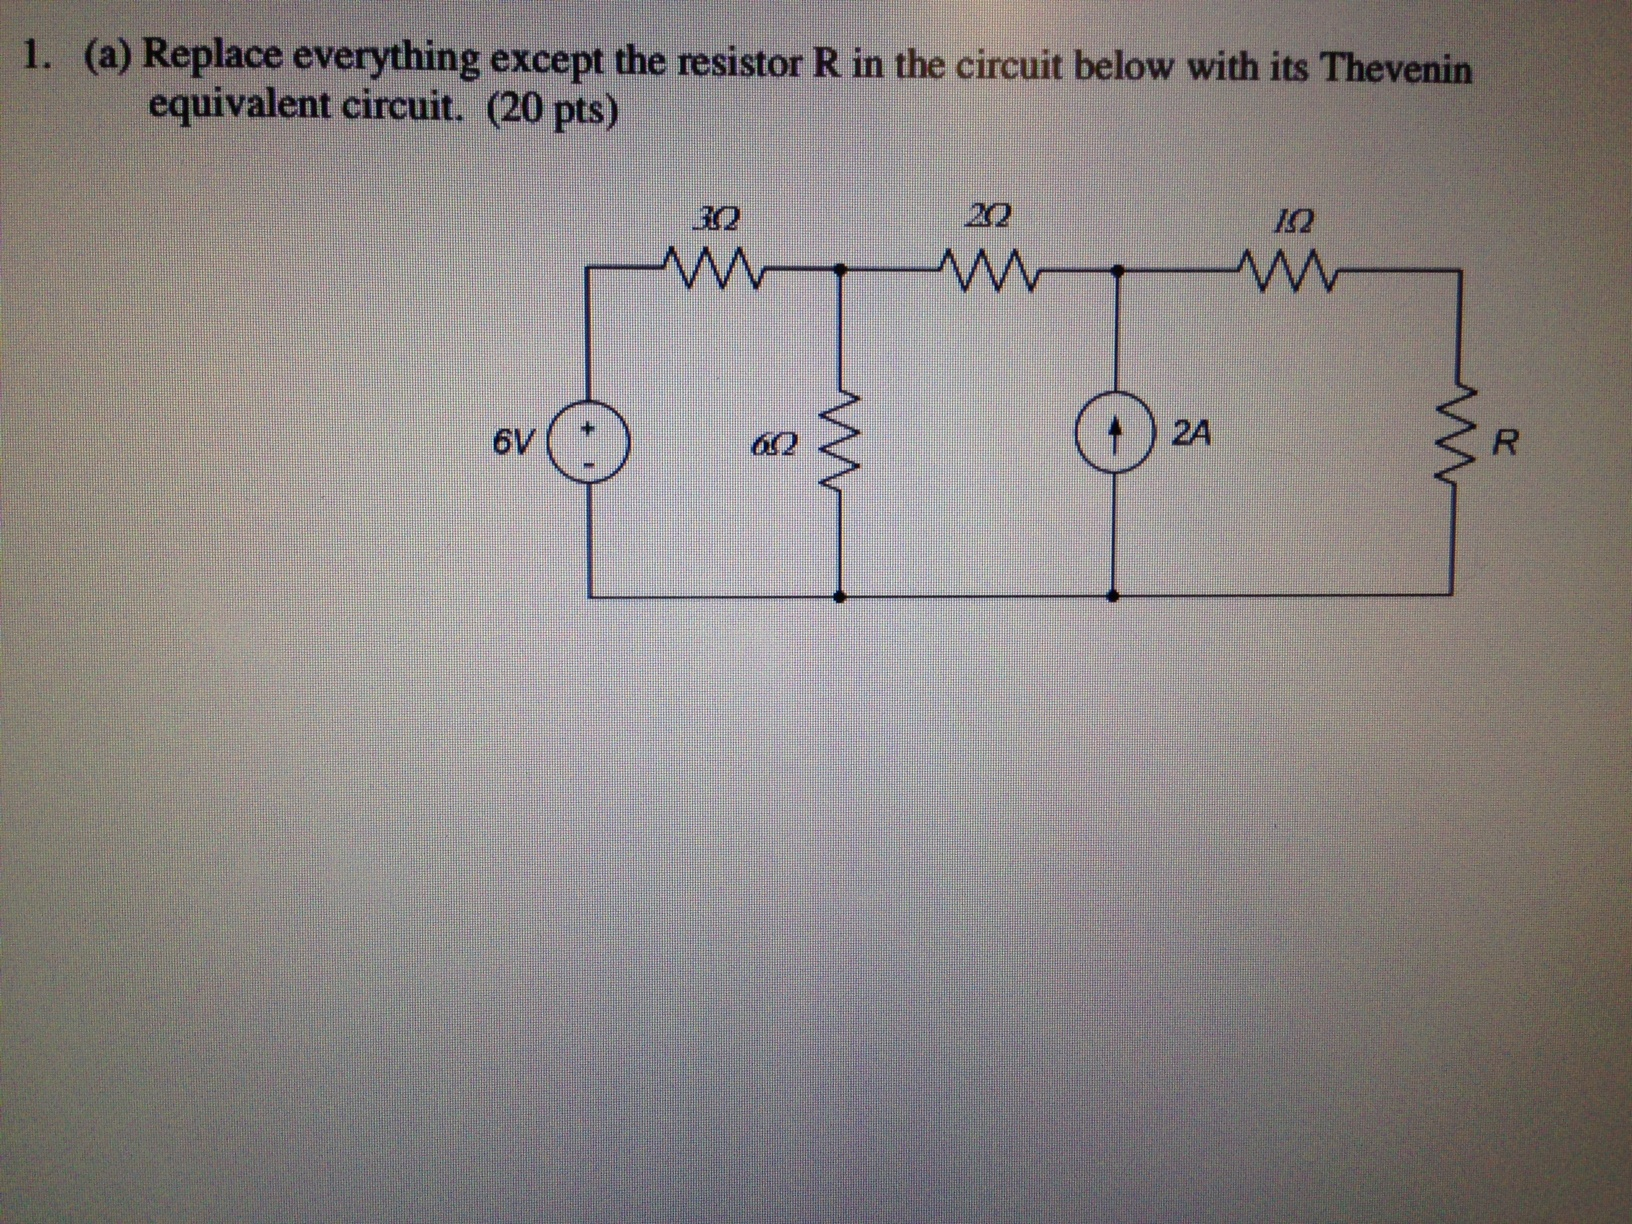 Replace everything except the resistor R in the ci